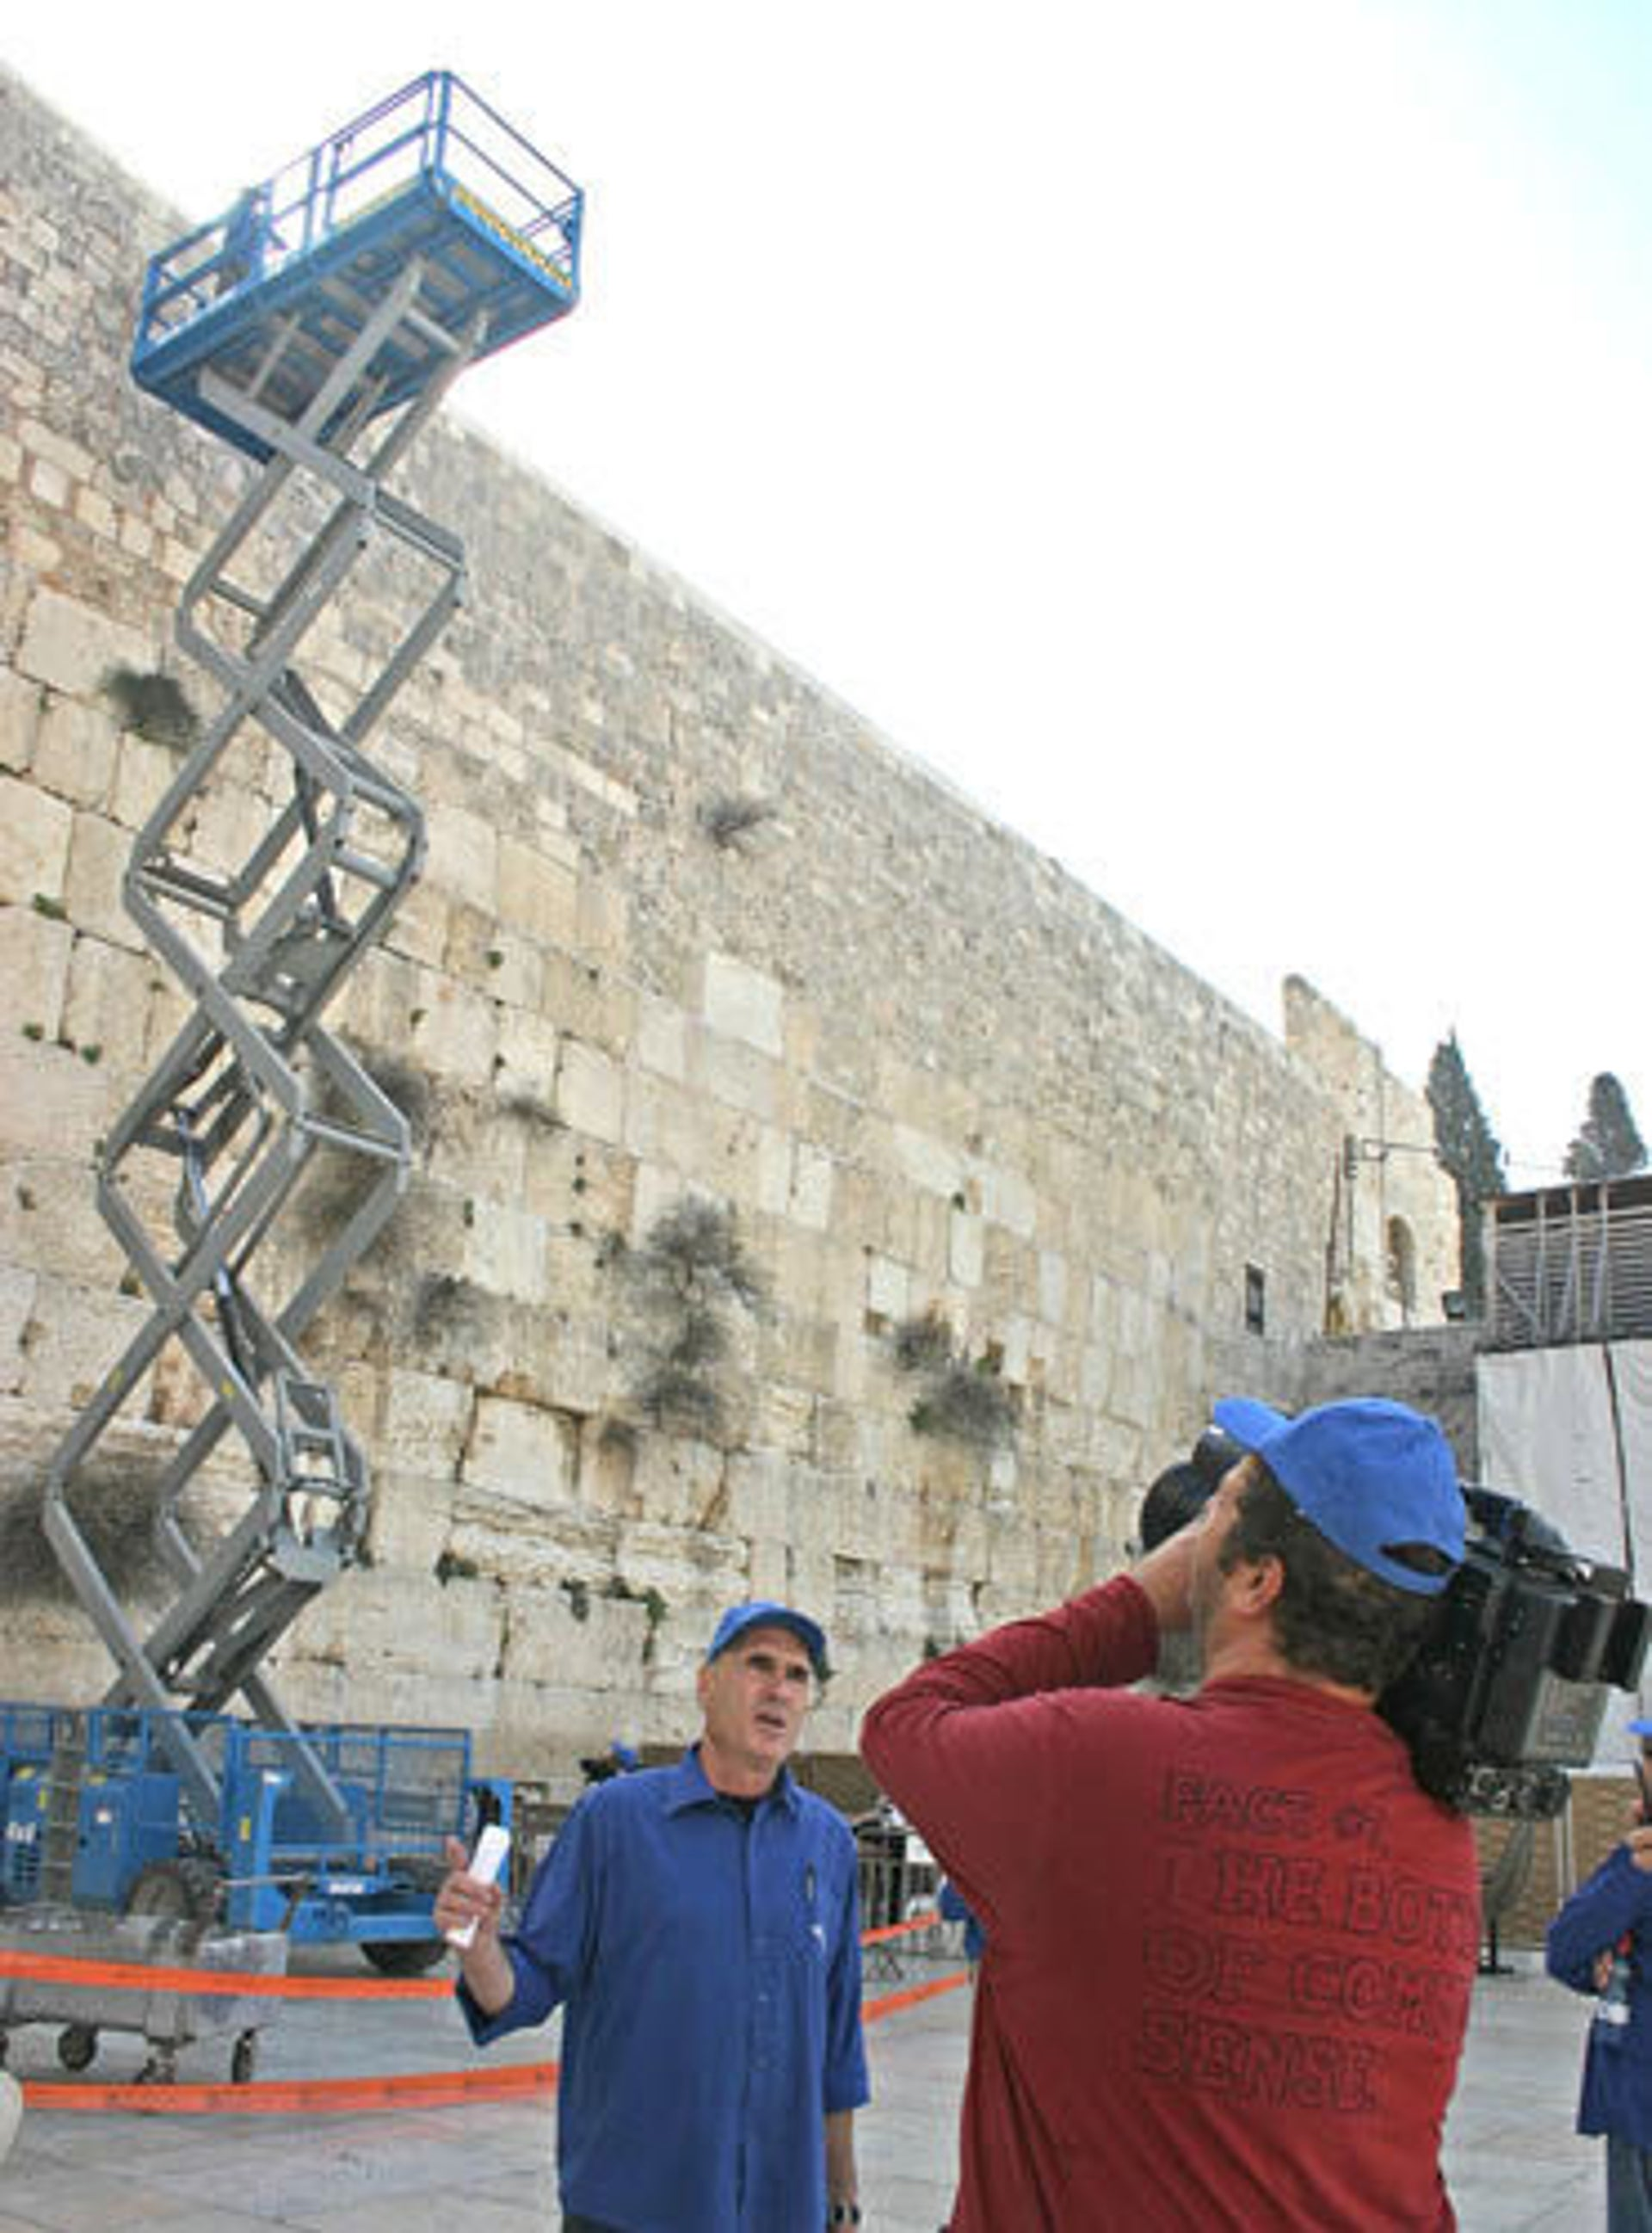 Working being undertaken as part of the Western Wall Conservation Project.